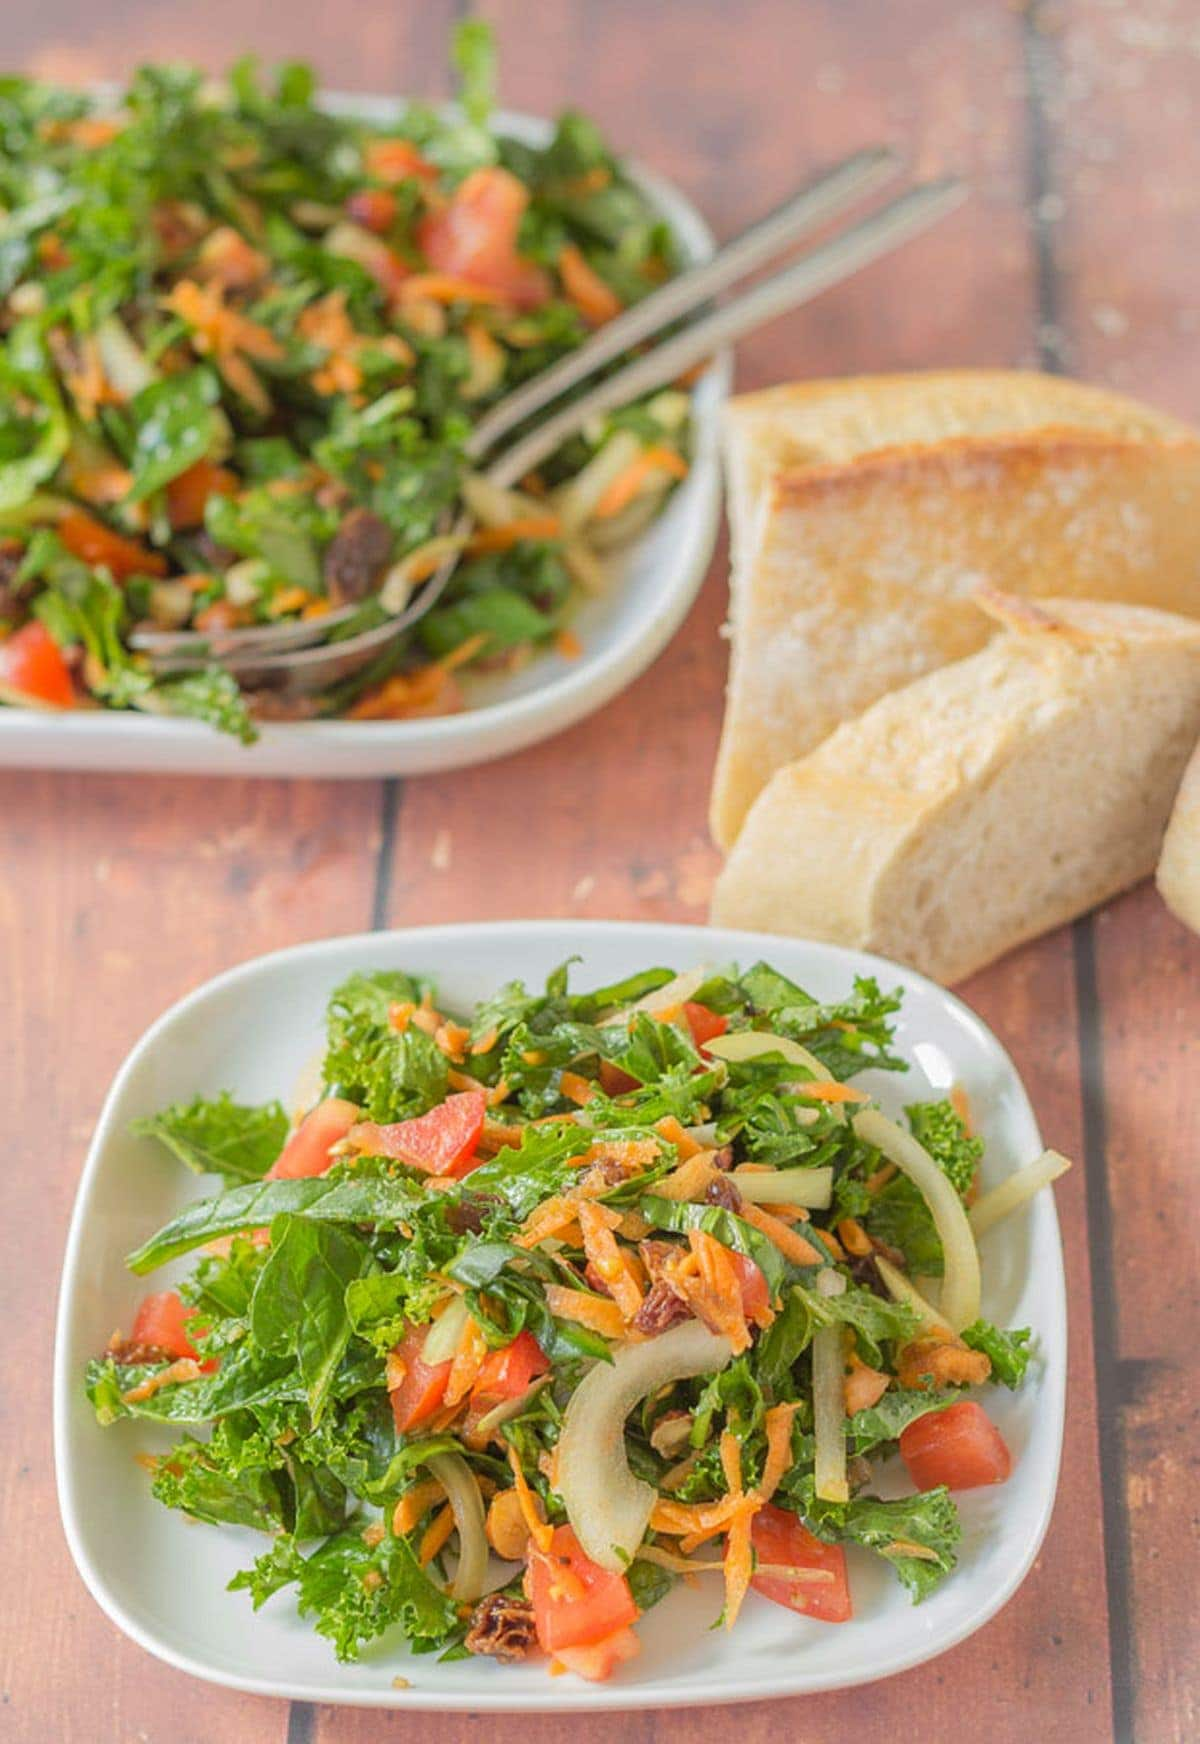 Two square plates of shredded kale and spinach salad one in front of the other with some sliced bread in between.